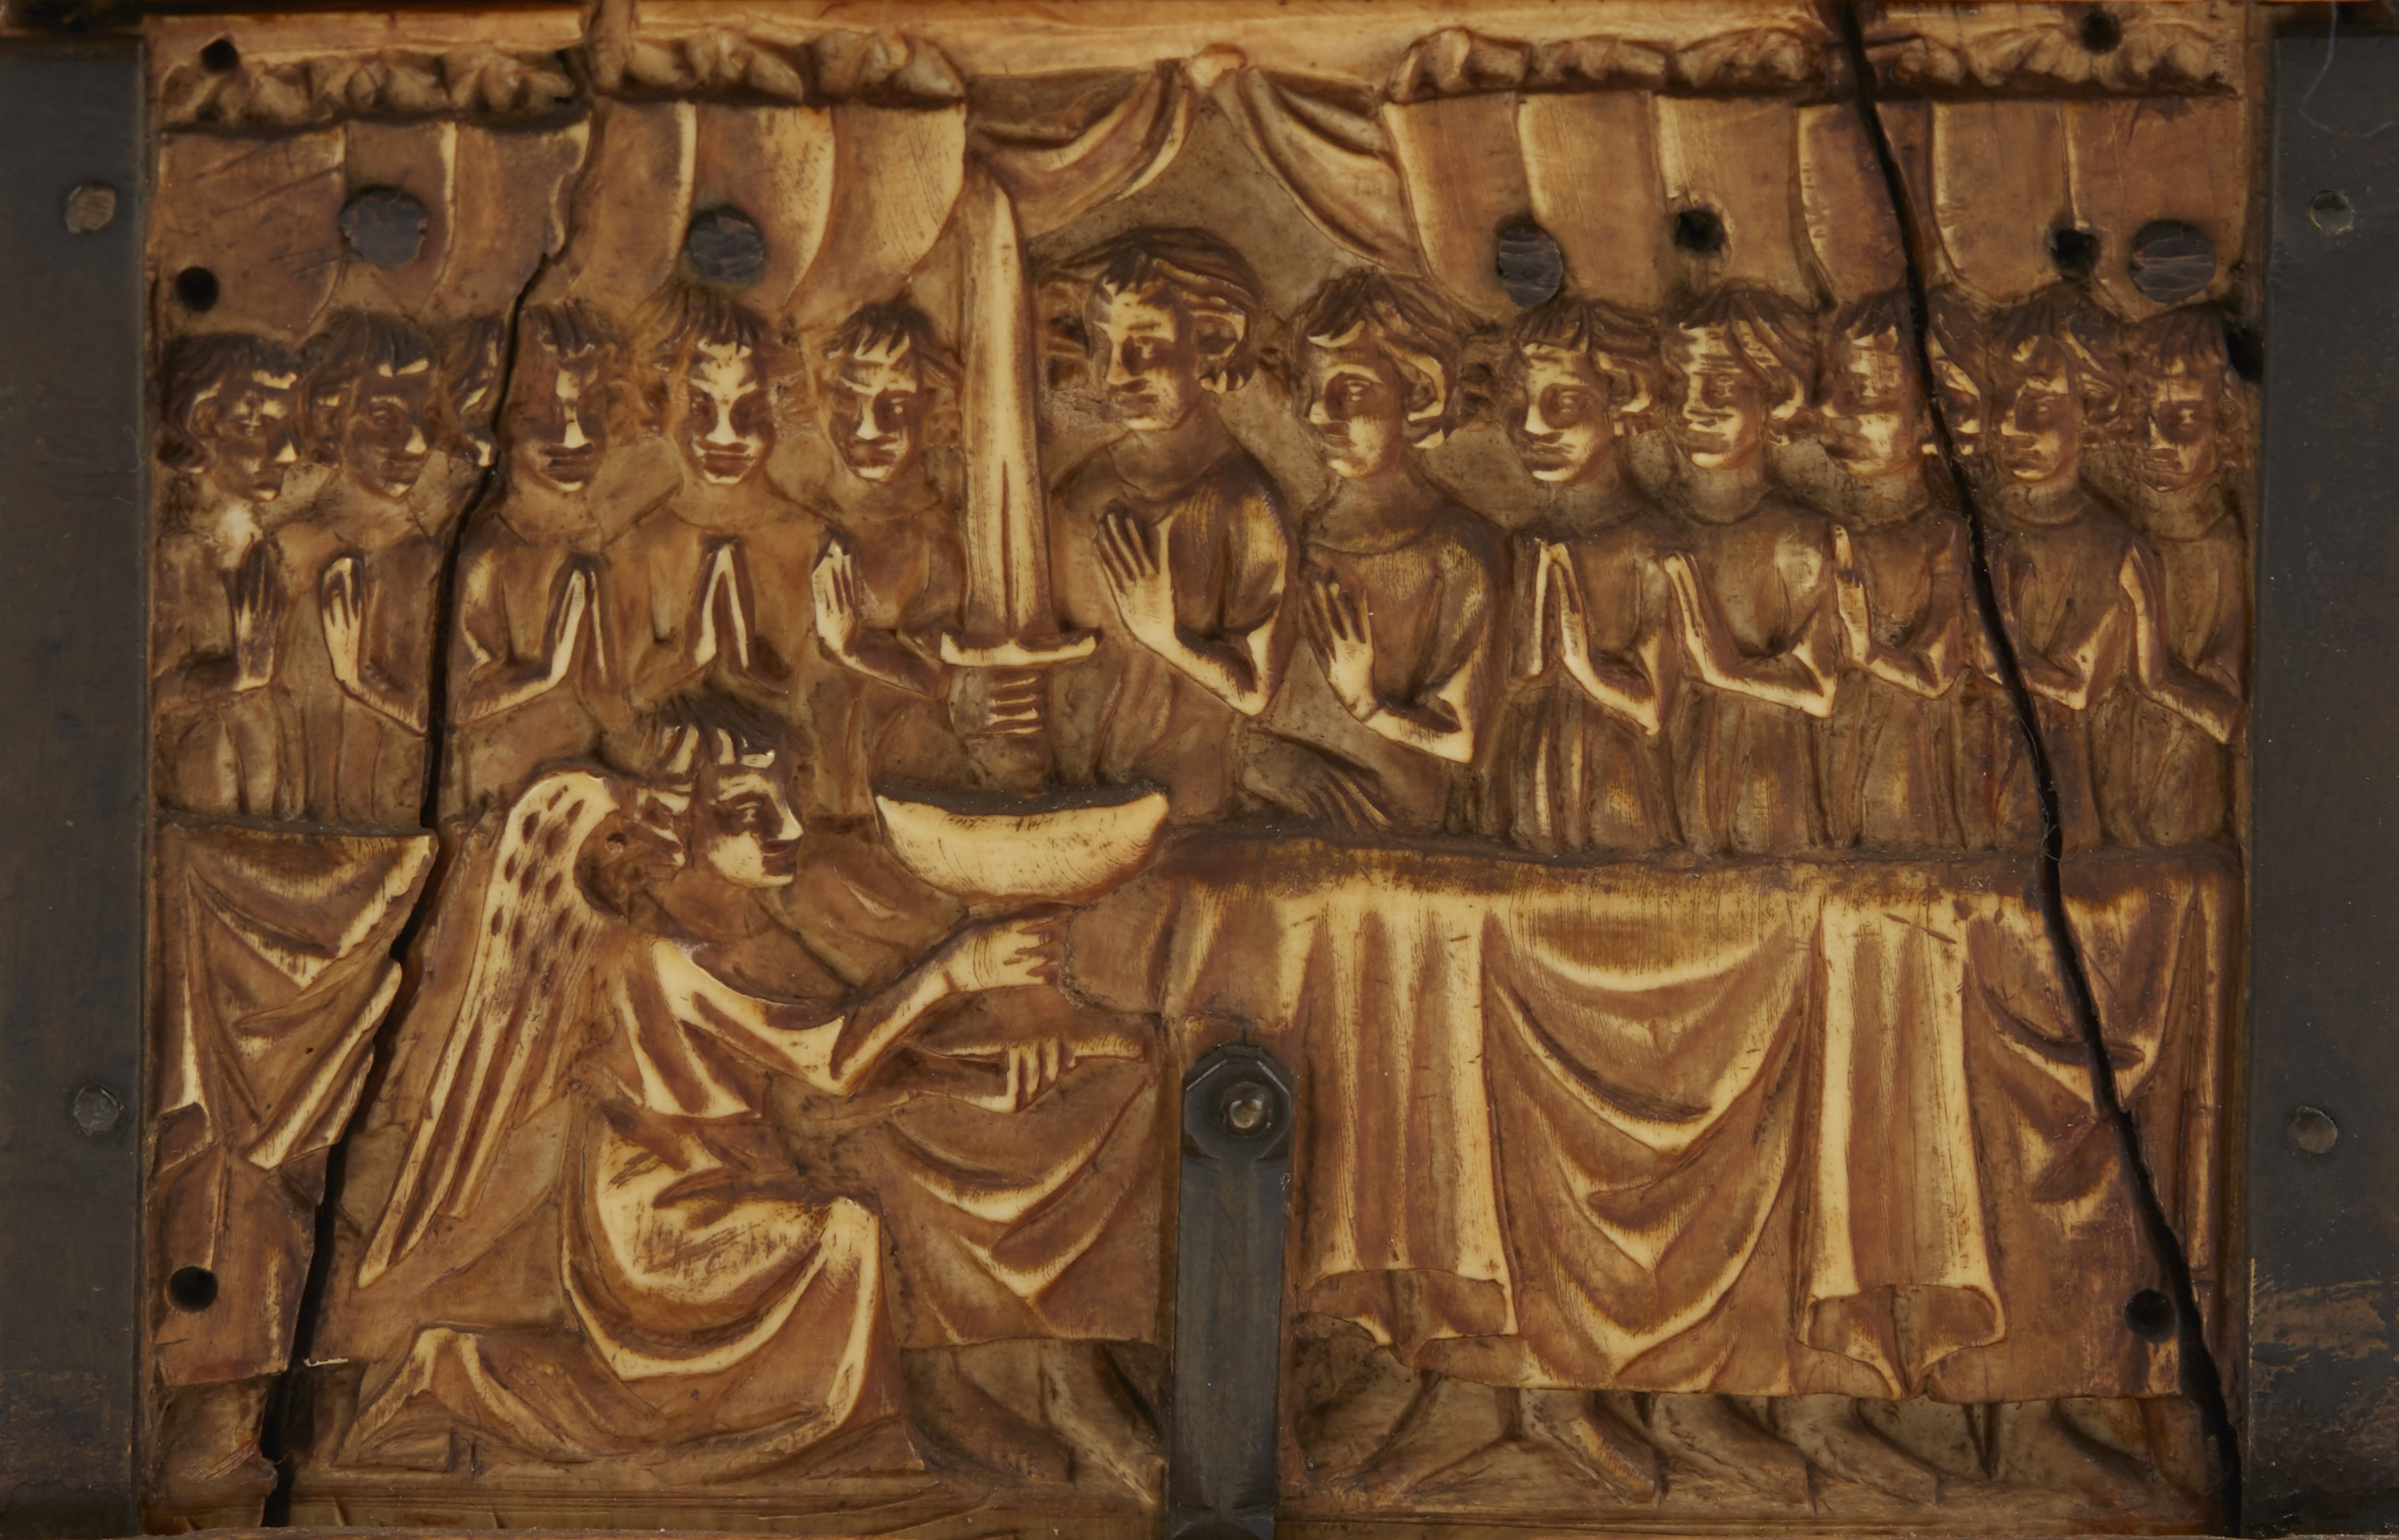 Y ◆ RARE AND IMPORTANT FRENCH GOTHIC IVORY COMPOSITE CASKET CIRCA 1330 - Image 7 of 8